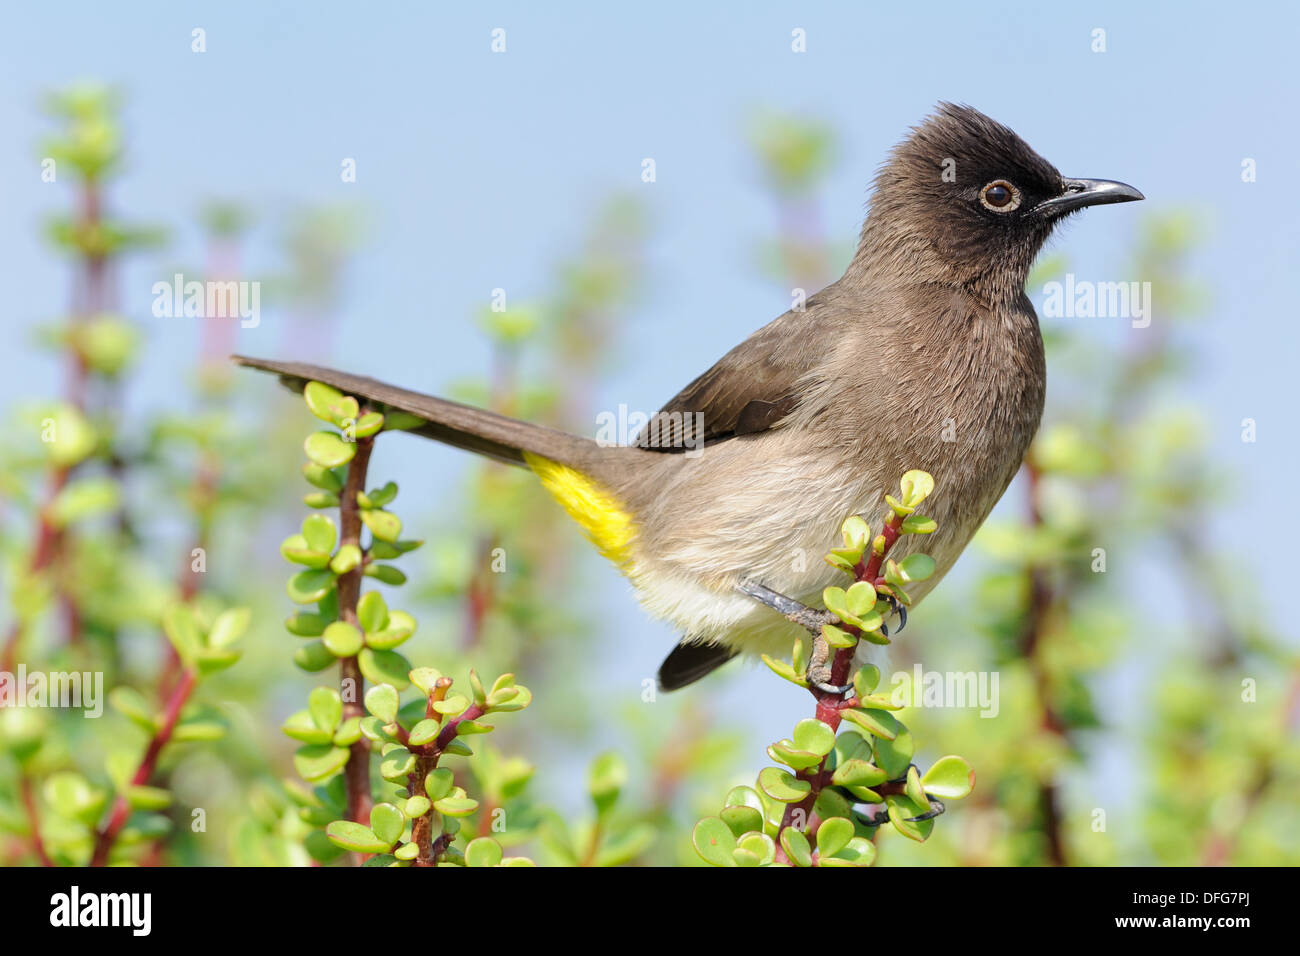 Cape Bulbul (Pycnonotus capensis), perched on a twig, Addo National Park, Eastern Cape, South Africa, Africa Stock Photo